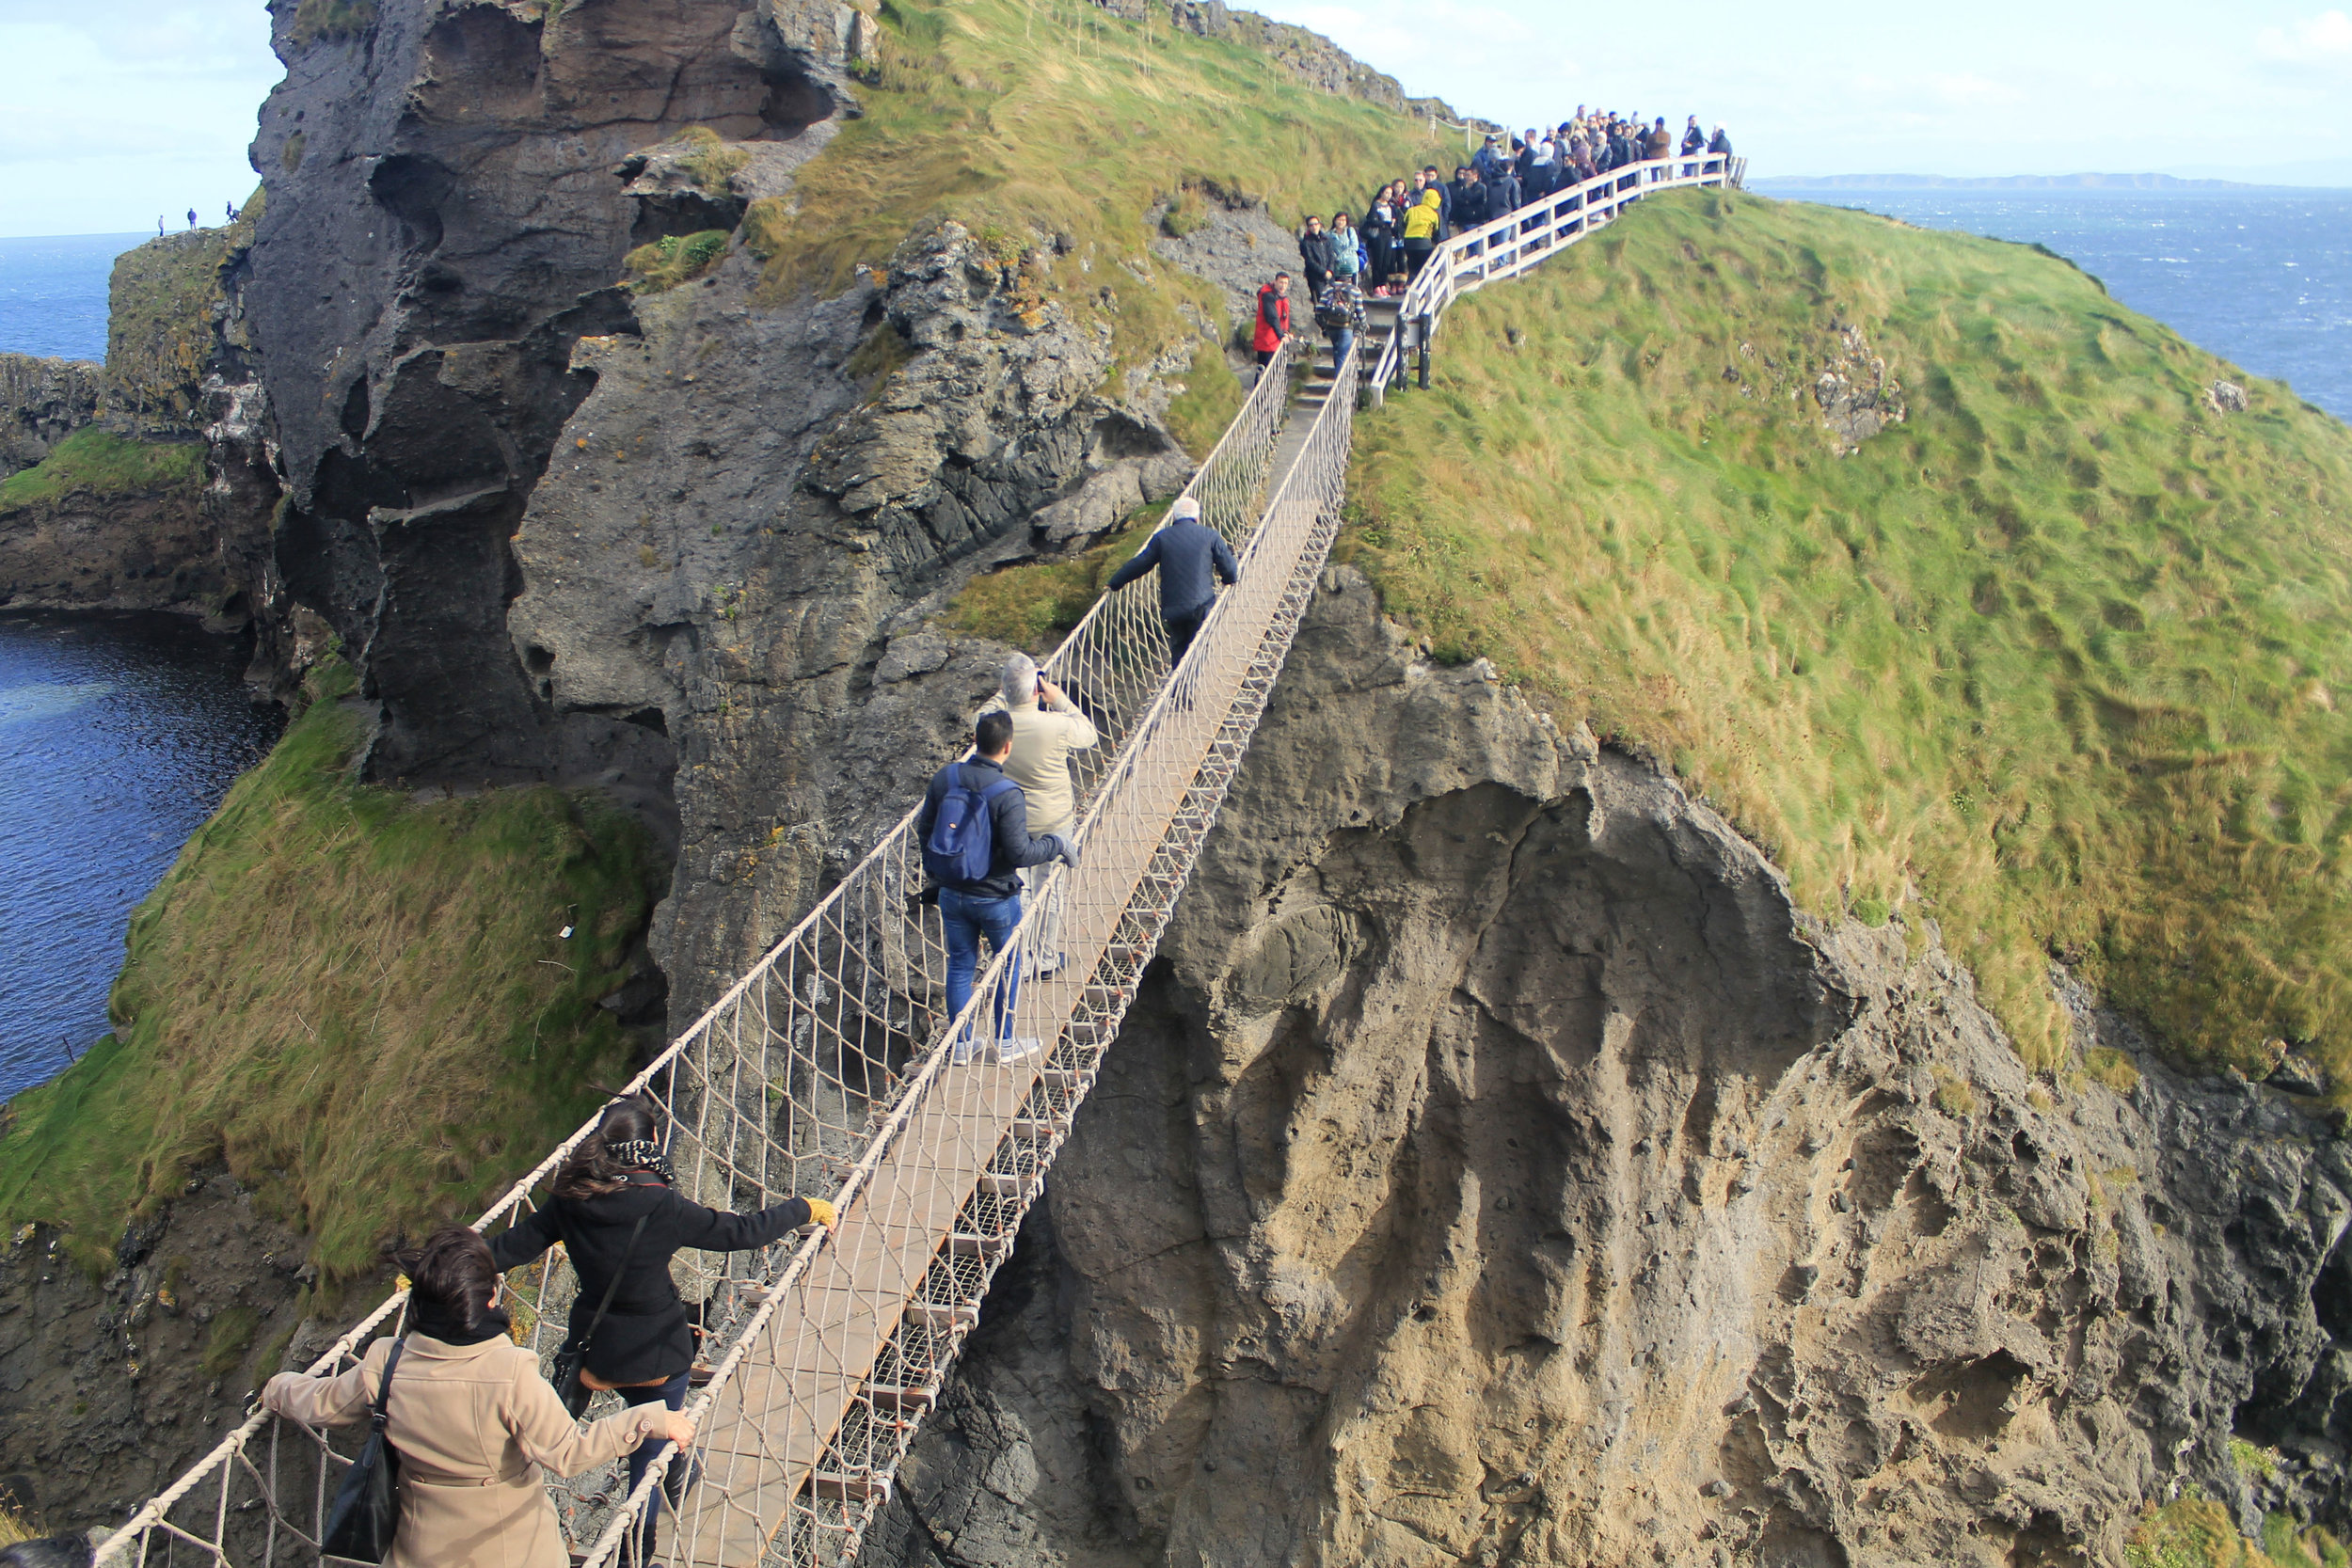 Carrick-A-Rede rope bridge, which is open depending on wind and weather conditions.